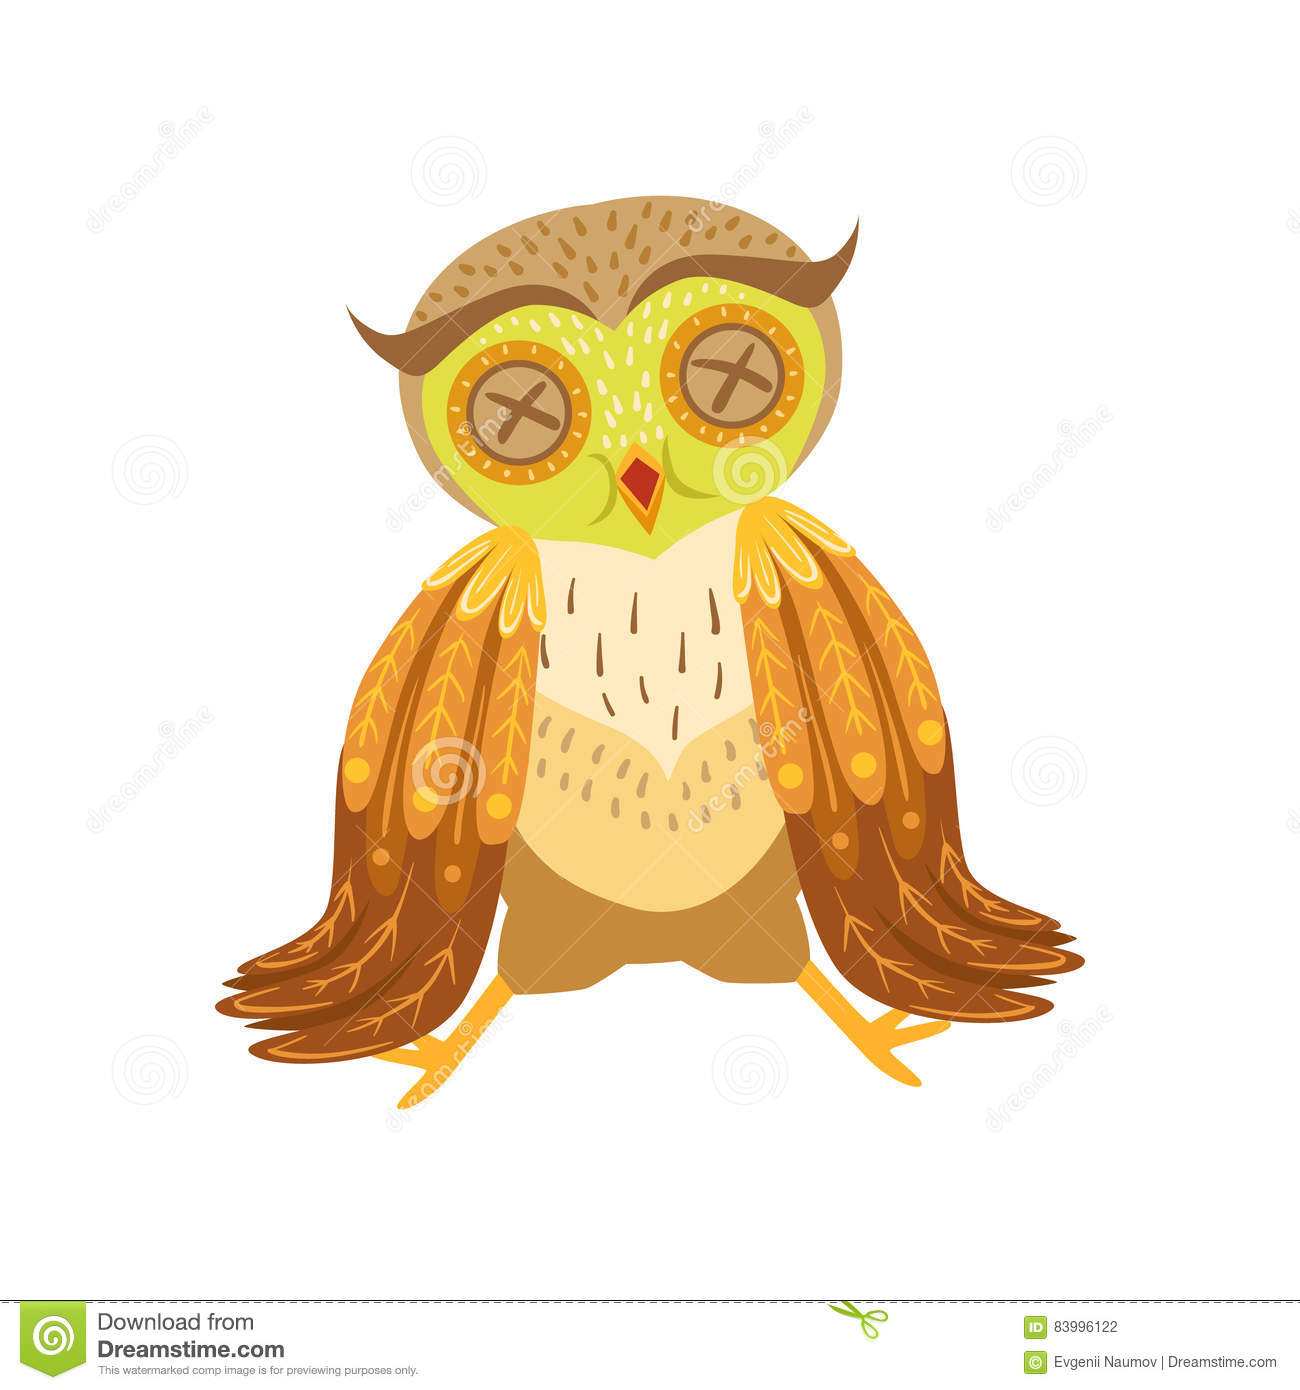 Image of: Vector Ziek Owl Cute Cartoon Character Emoji Met Forest Bird Showing Human Emotions En Gedrag Dreamstime Ziek Owl Cute Cartoon Character Emoji Met Forest Bird Showing Human